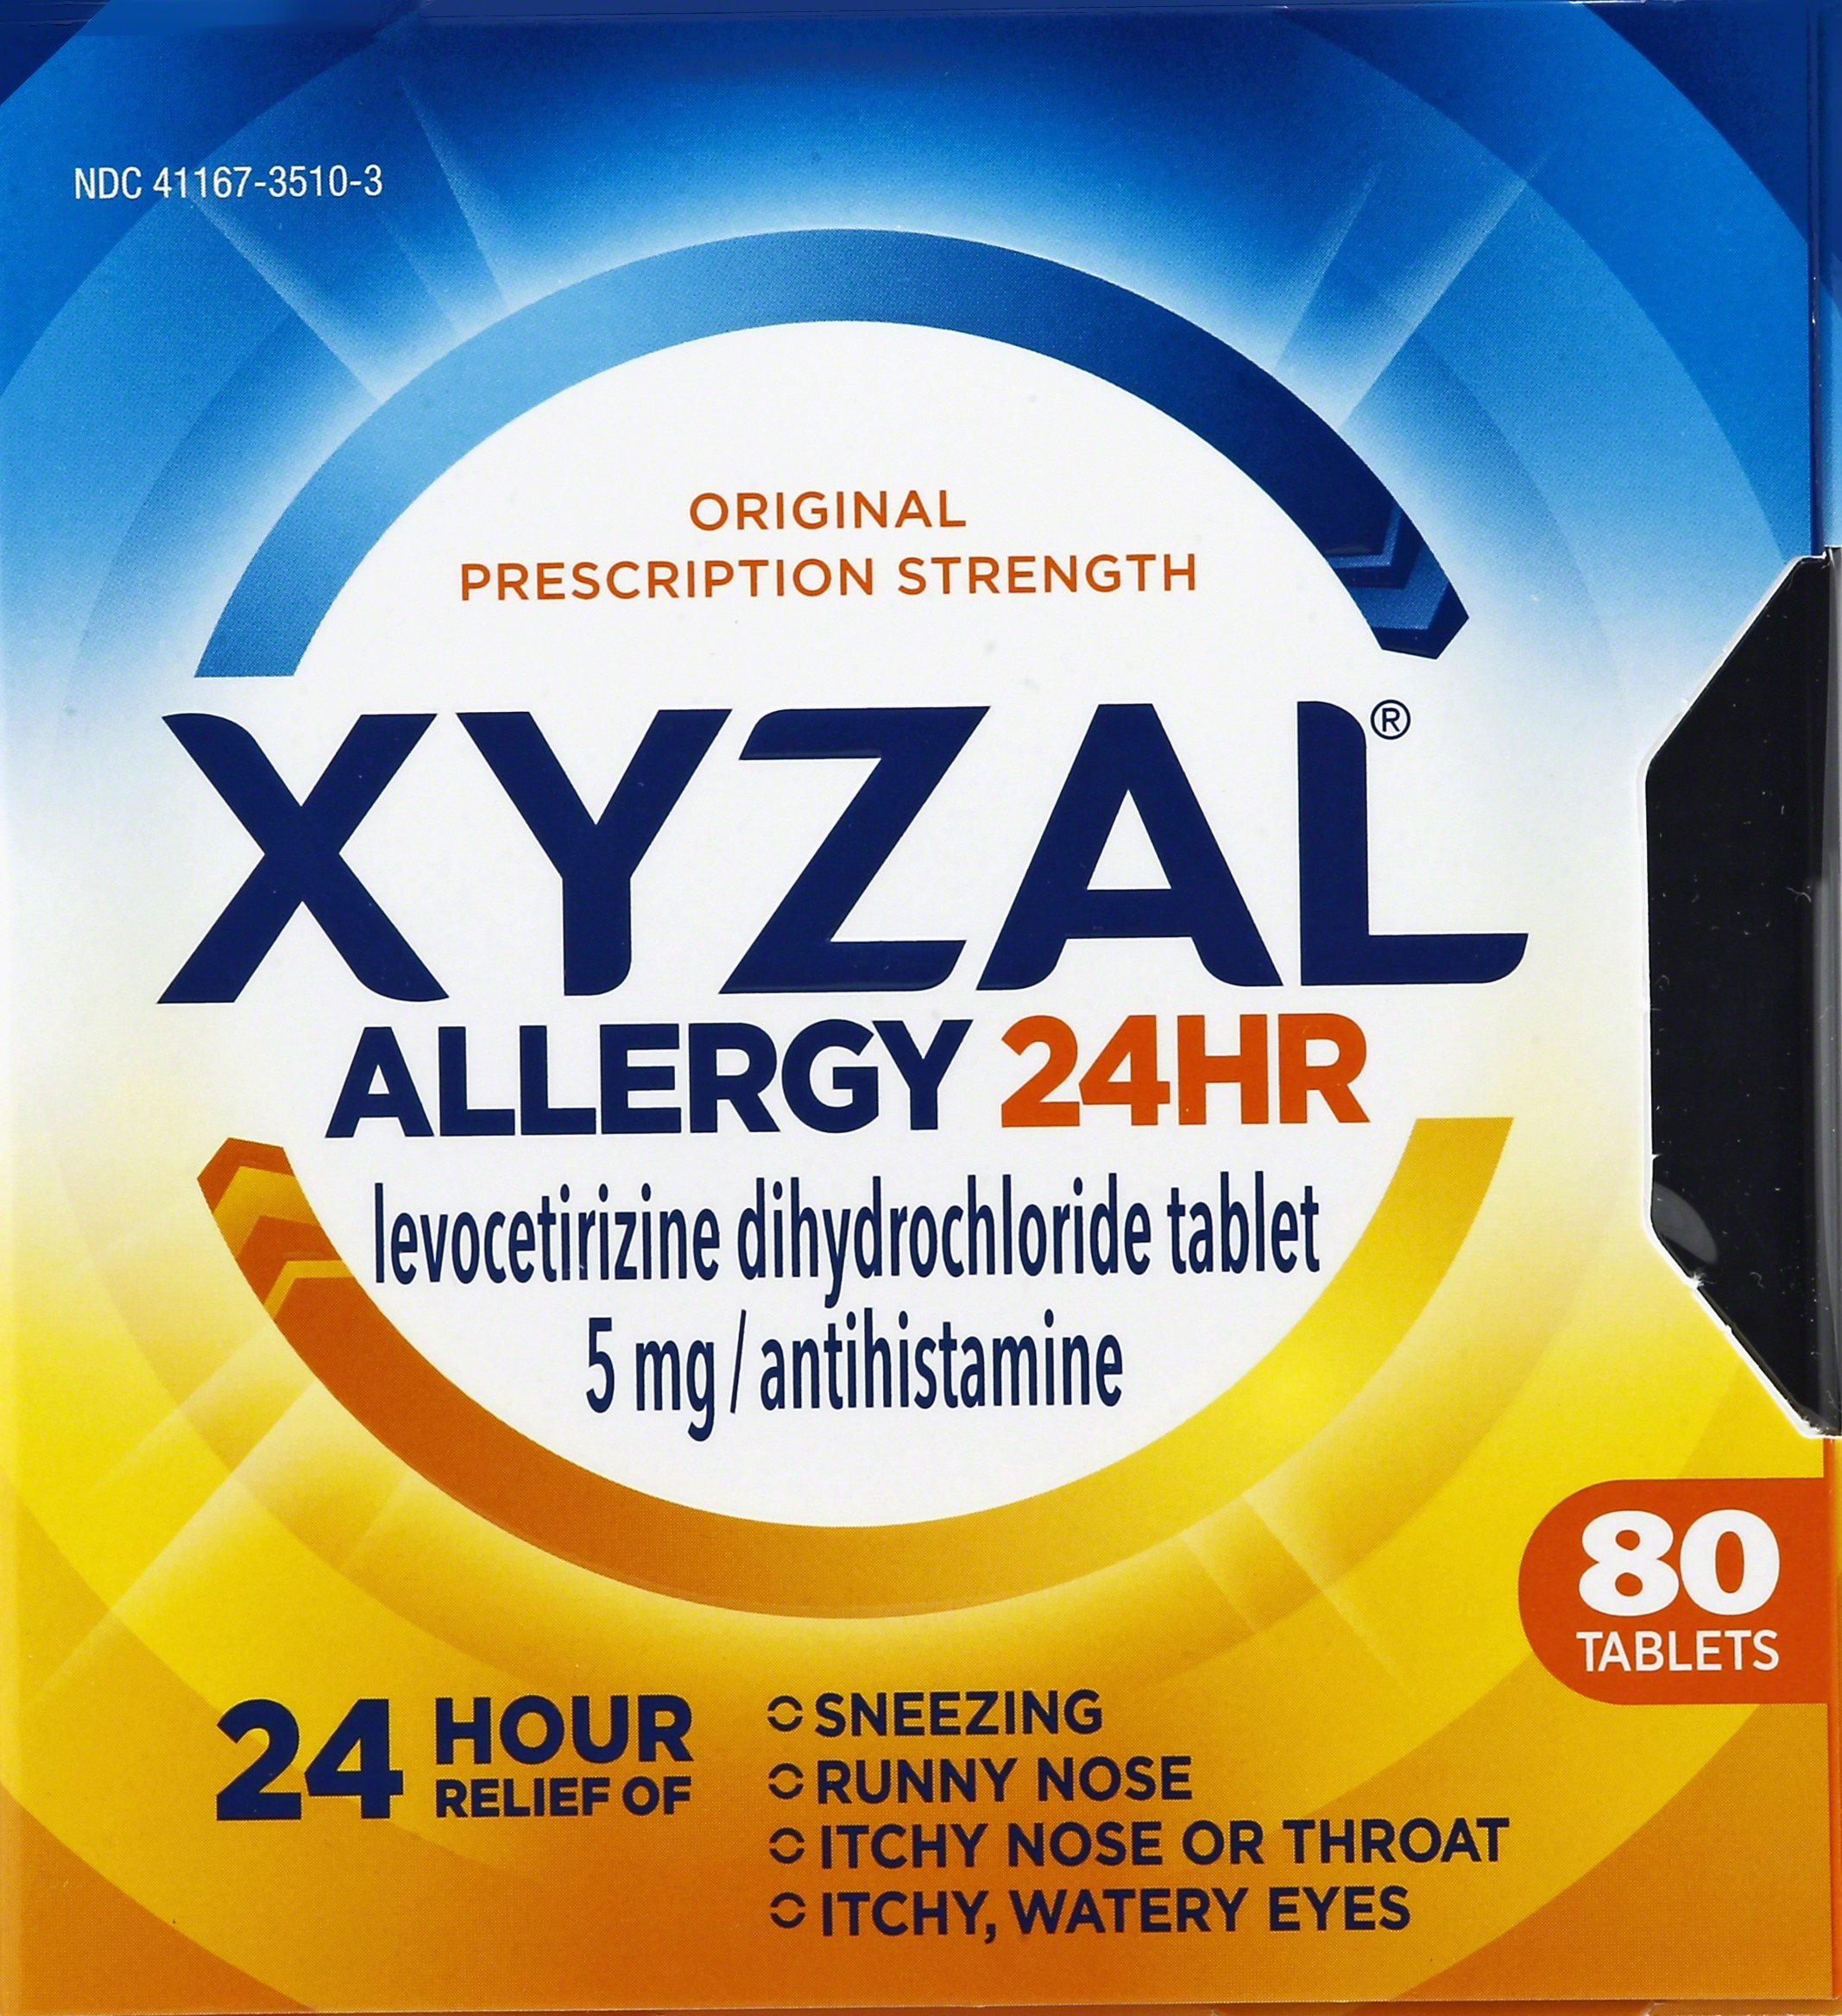 Xyzal Allergy 24 Hour, Allergy Tablet, 80 Count, All Day and Night Relief from Allergy Symptoms Including Sneezing, Runny Nose, Itchy Nose or Throat, Itchy, Watery Eyes by Xyzal